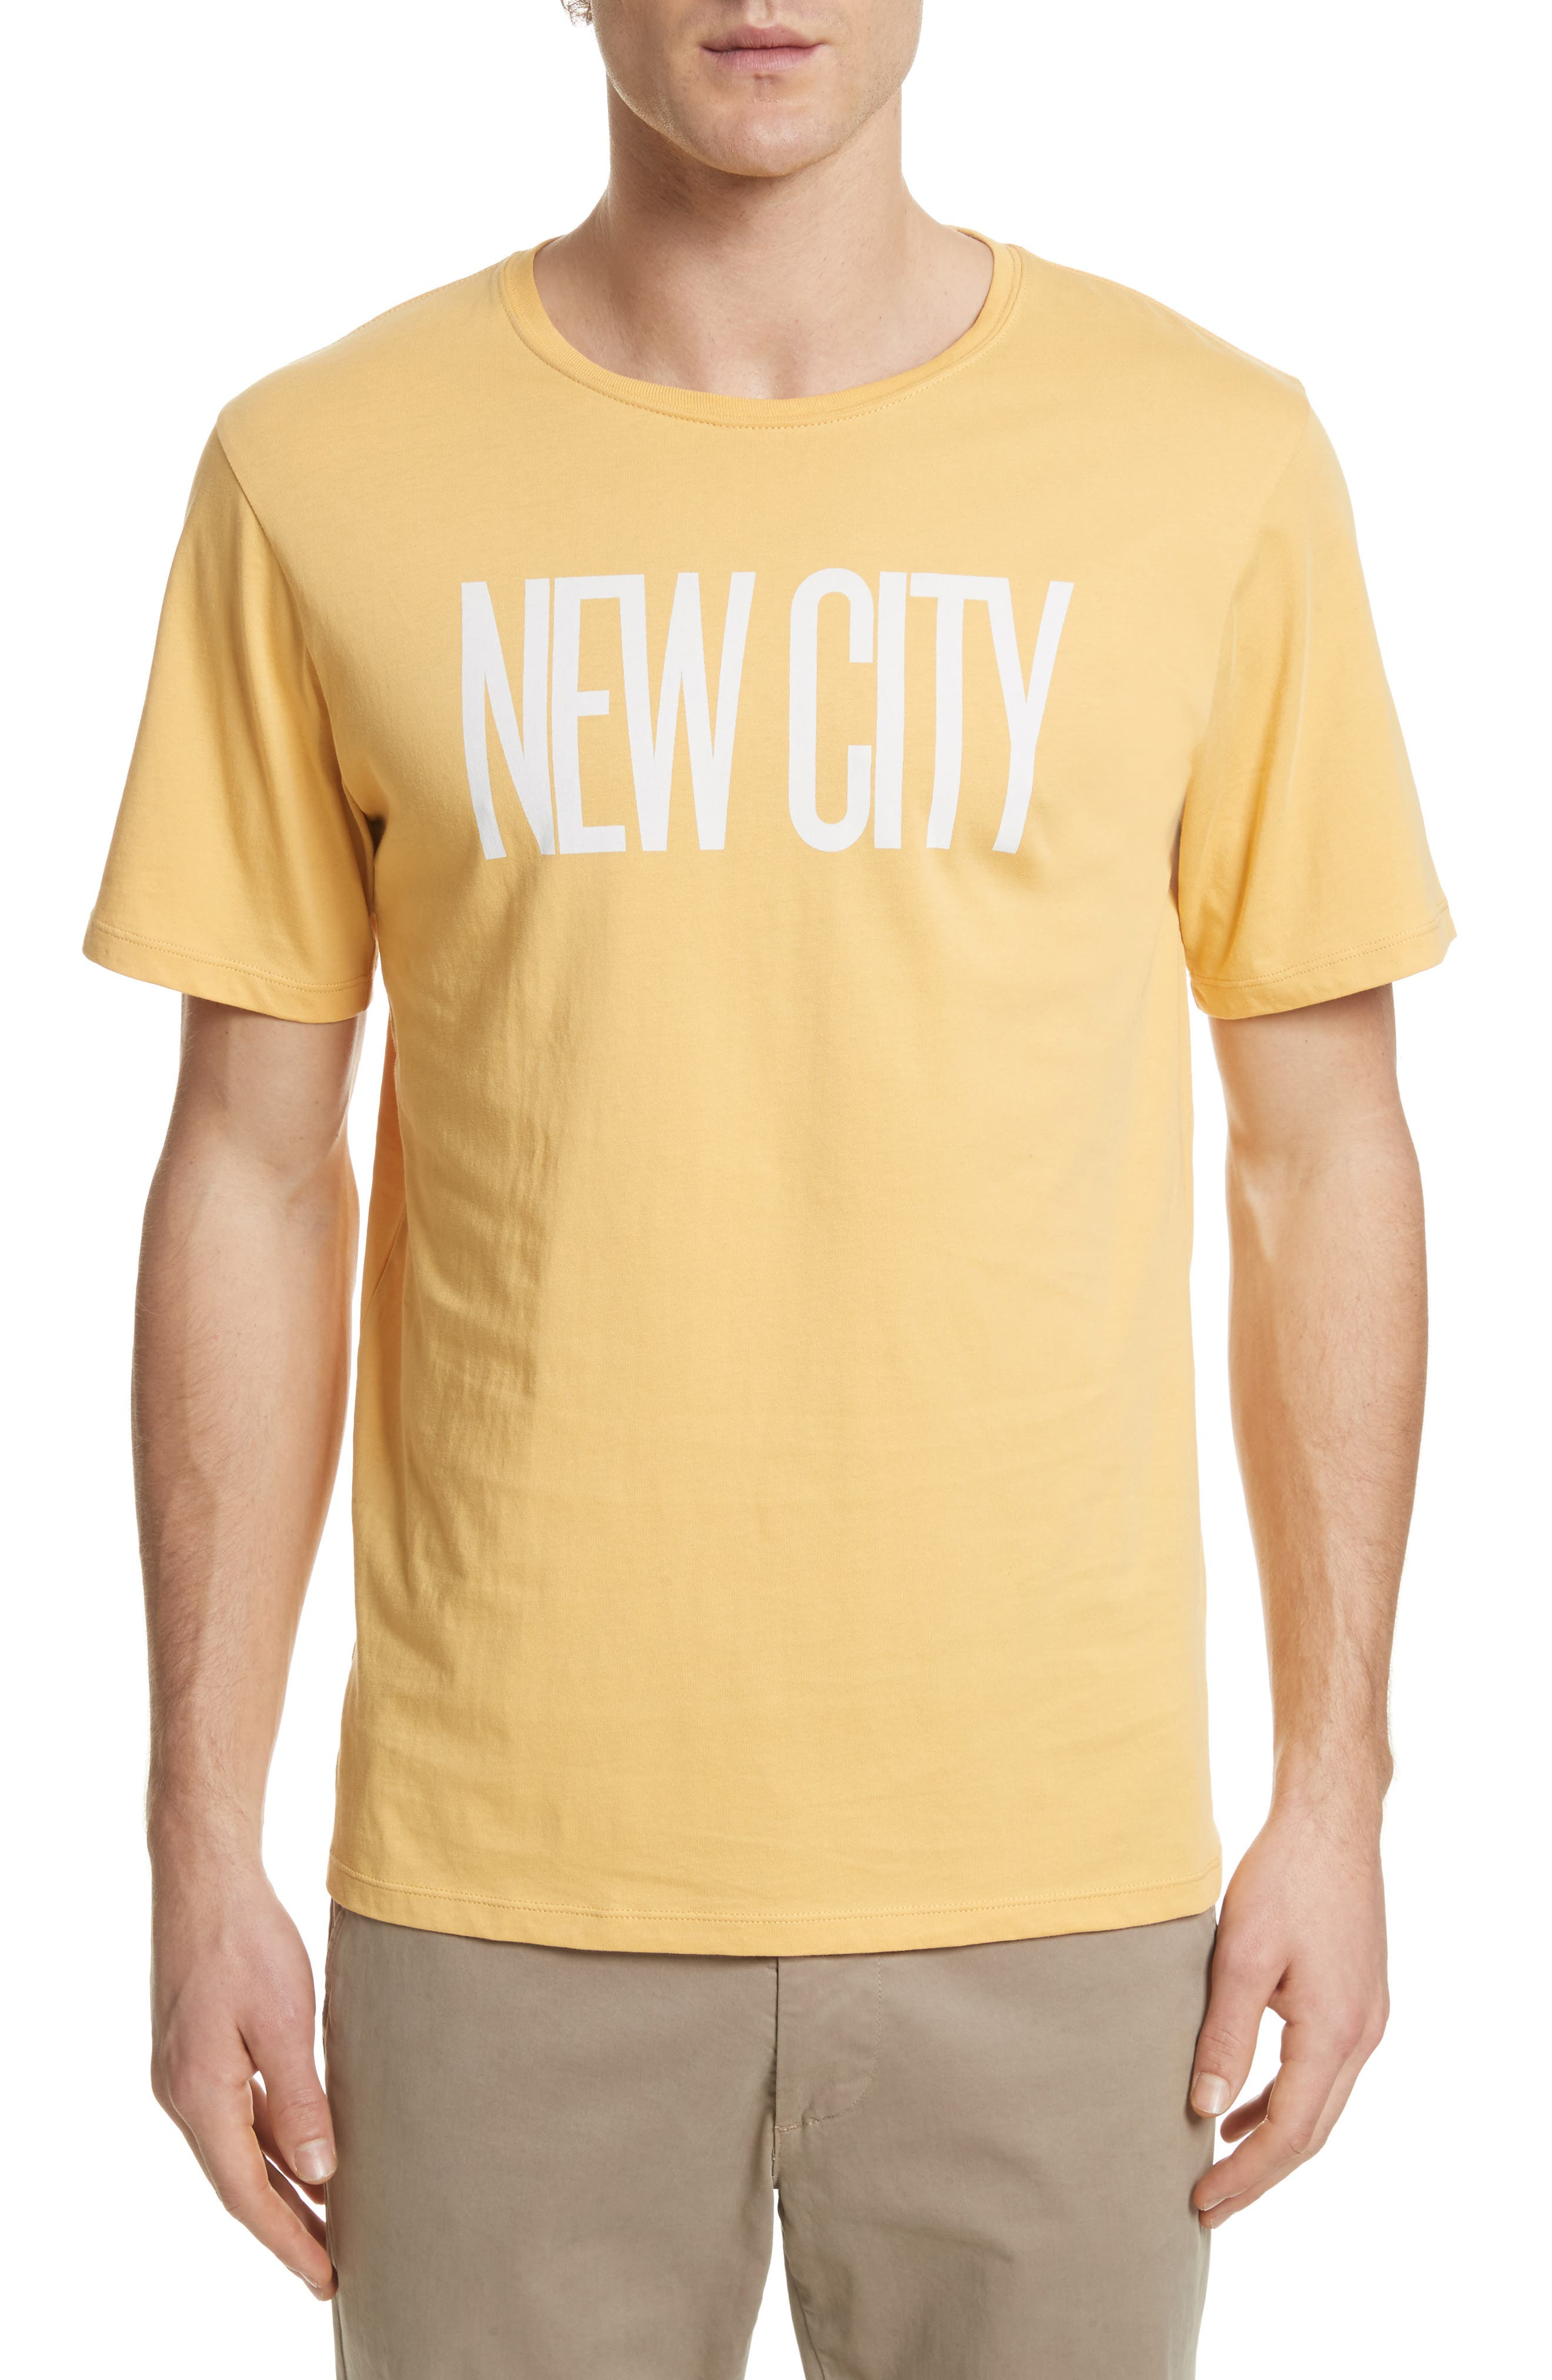 New City Graphic T-Shirt,                             Main thumbnail 1, color,                             Dusty Amber